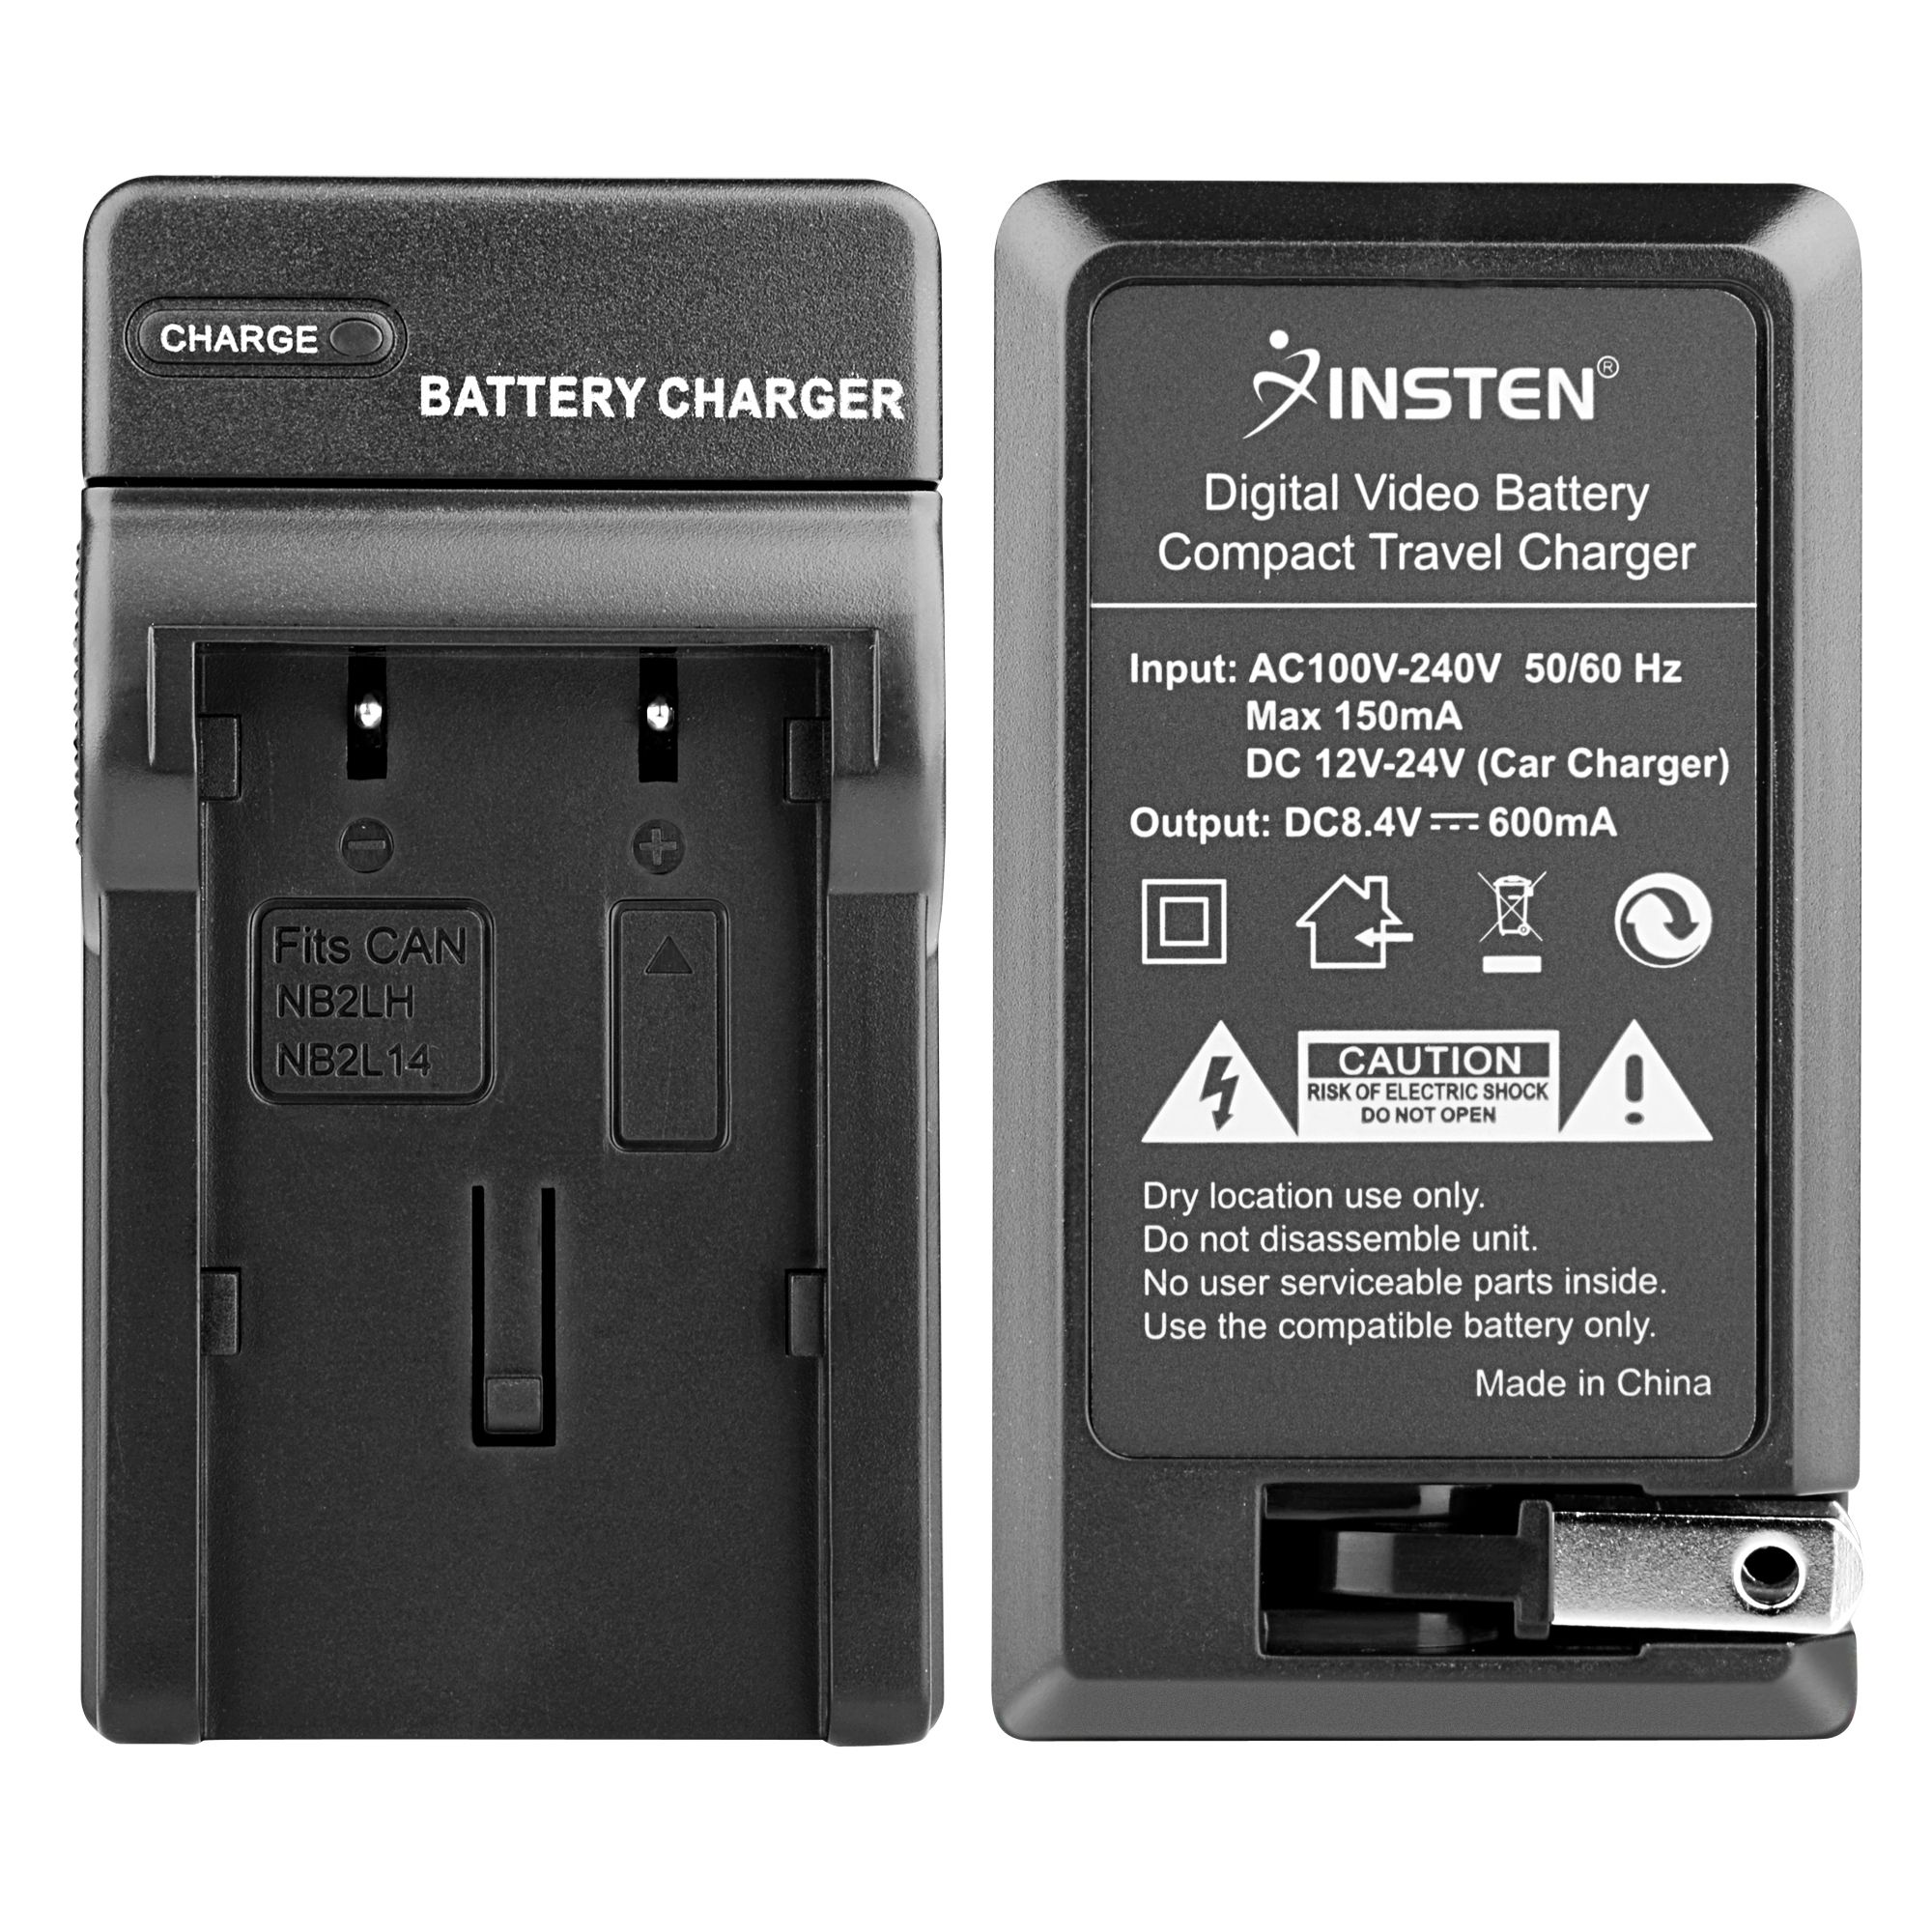 Insten TWO BATTERY And CHARGER For CANON Digital Rebel XT Xti